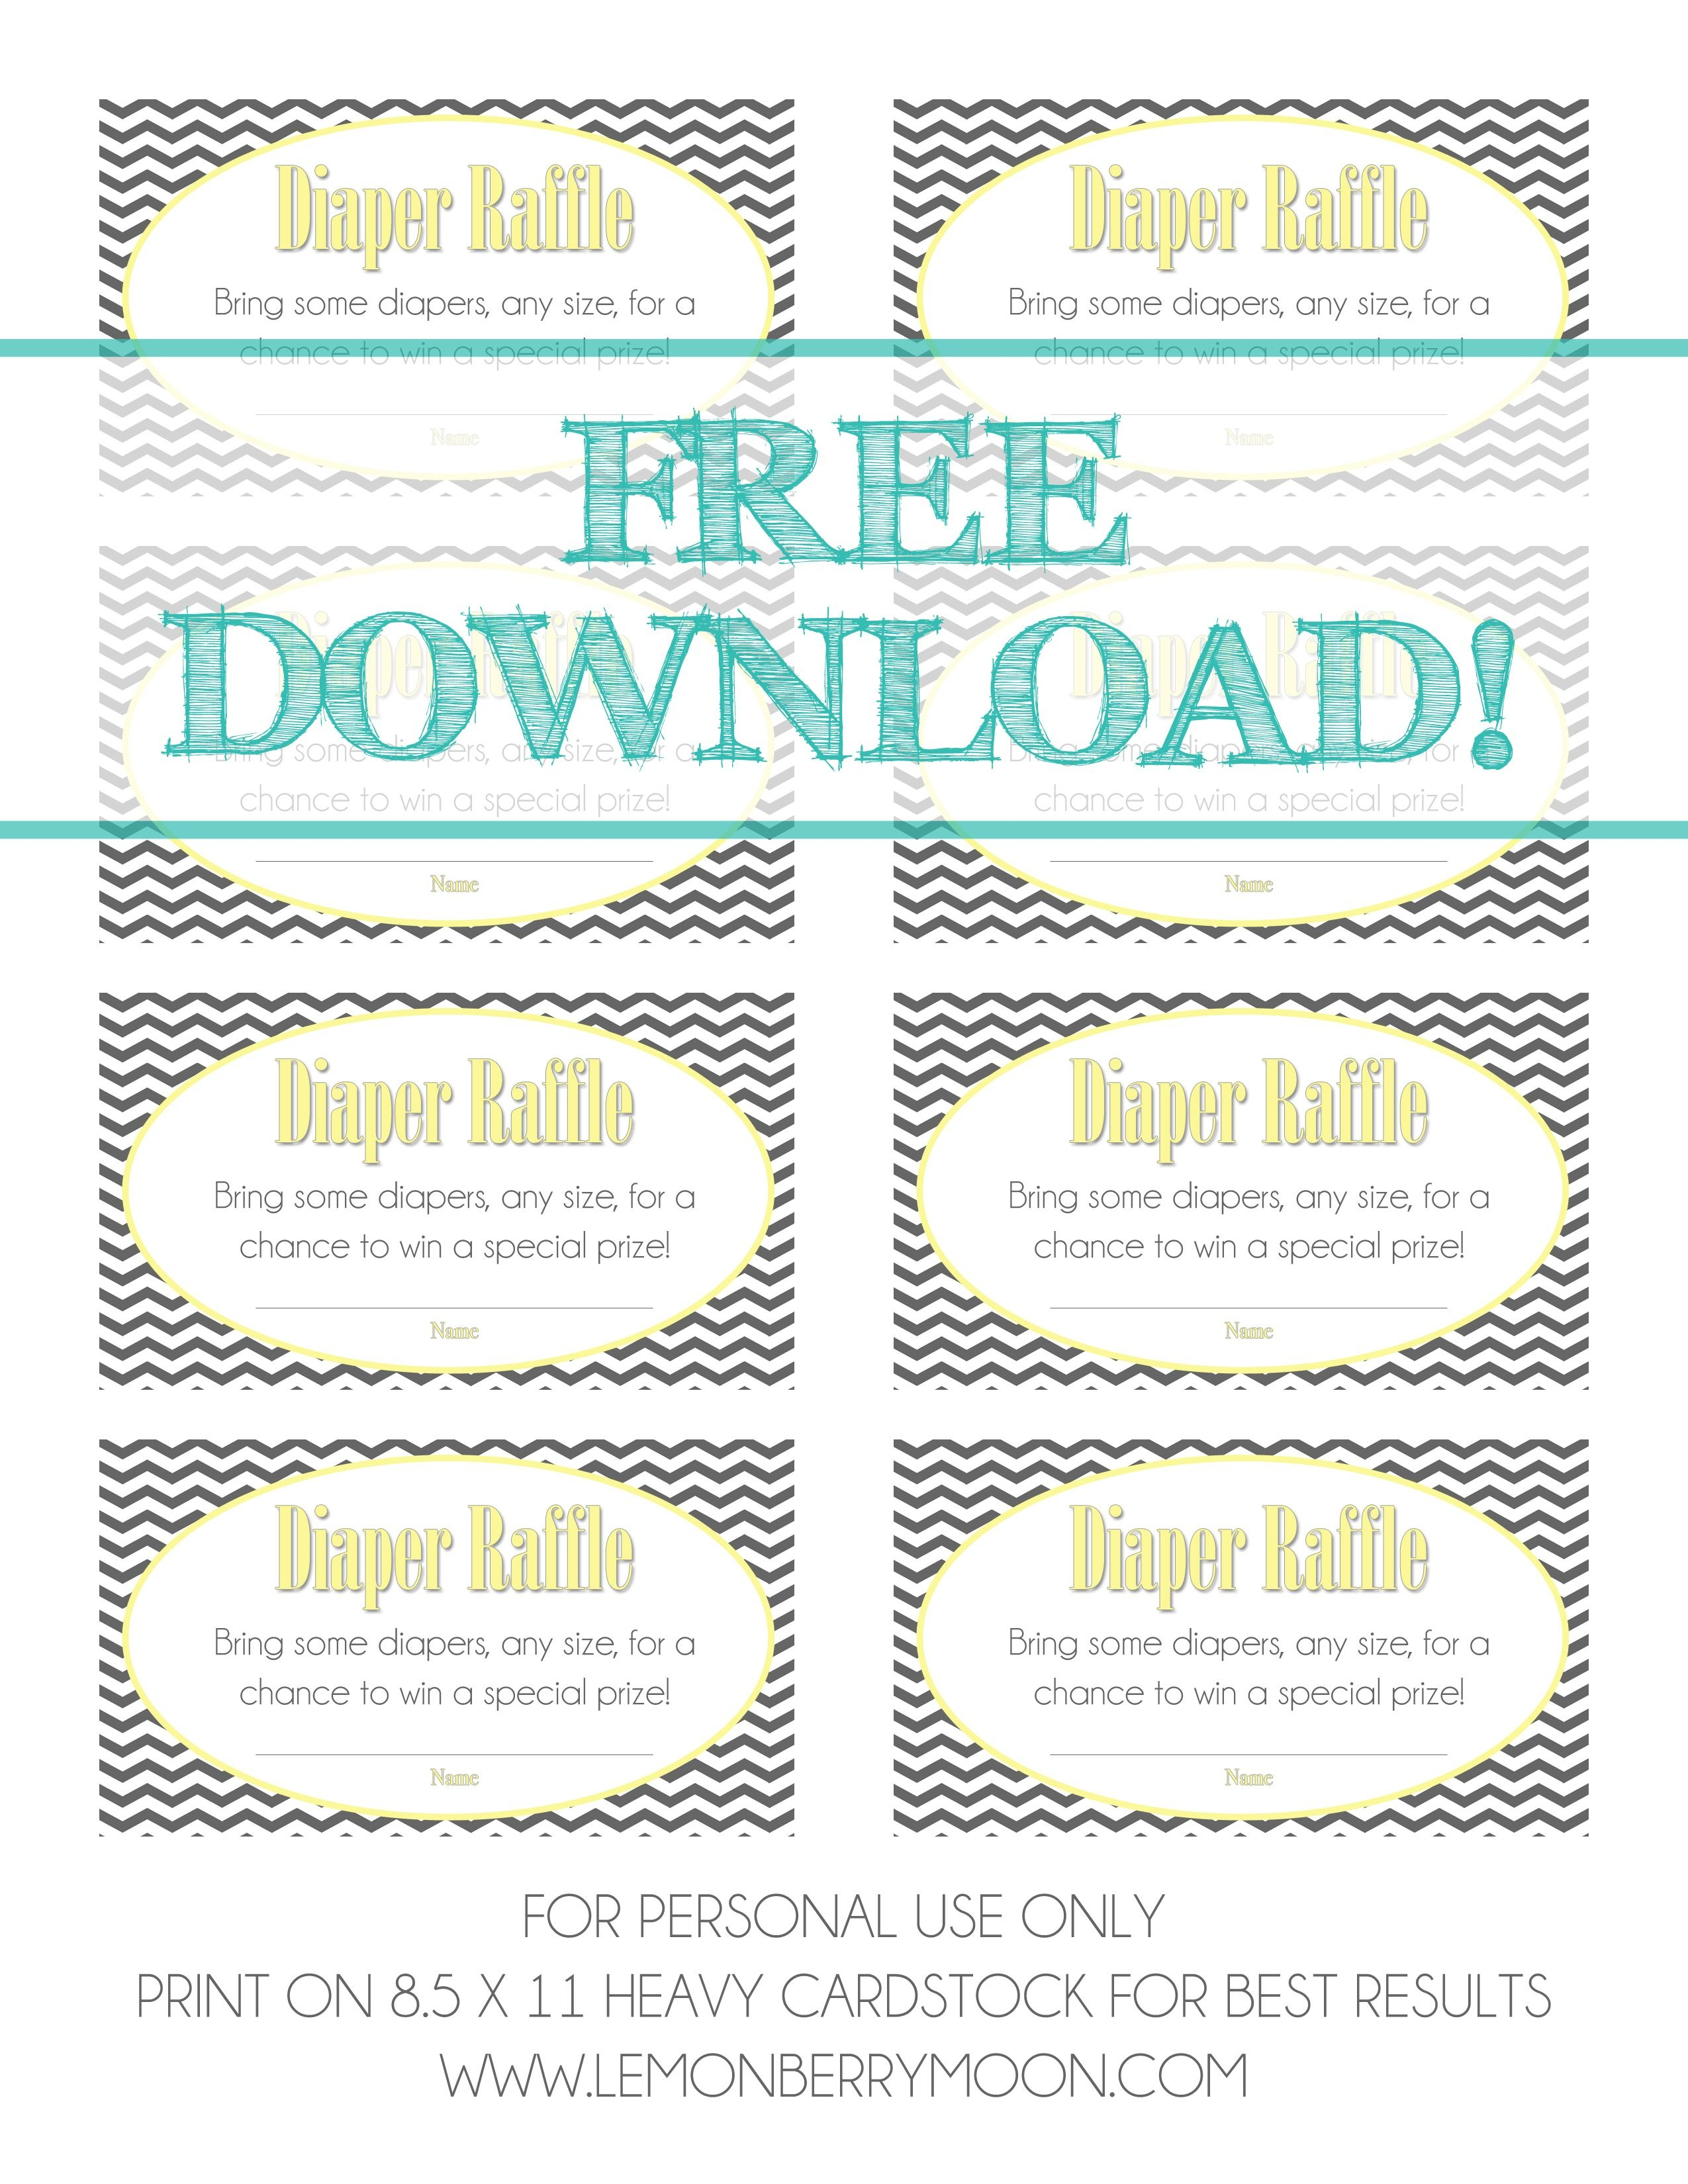 Free Download - Baby Diaper Raffle Template   Baby Boy Shower   Baby - Free Printable Diaper Raffle Tickets For Boy Baby Shower